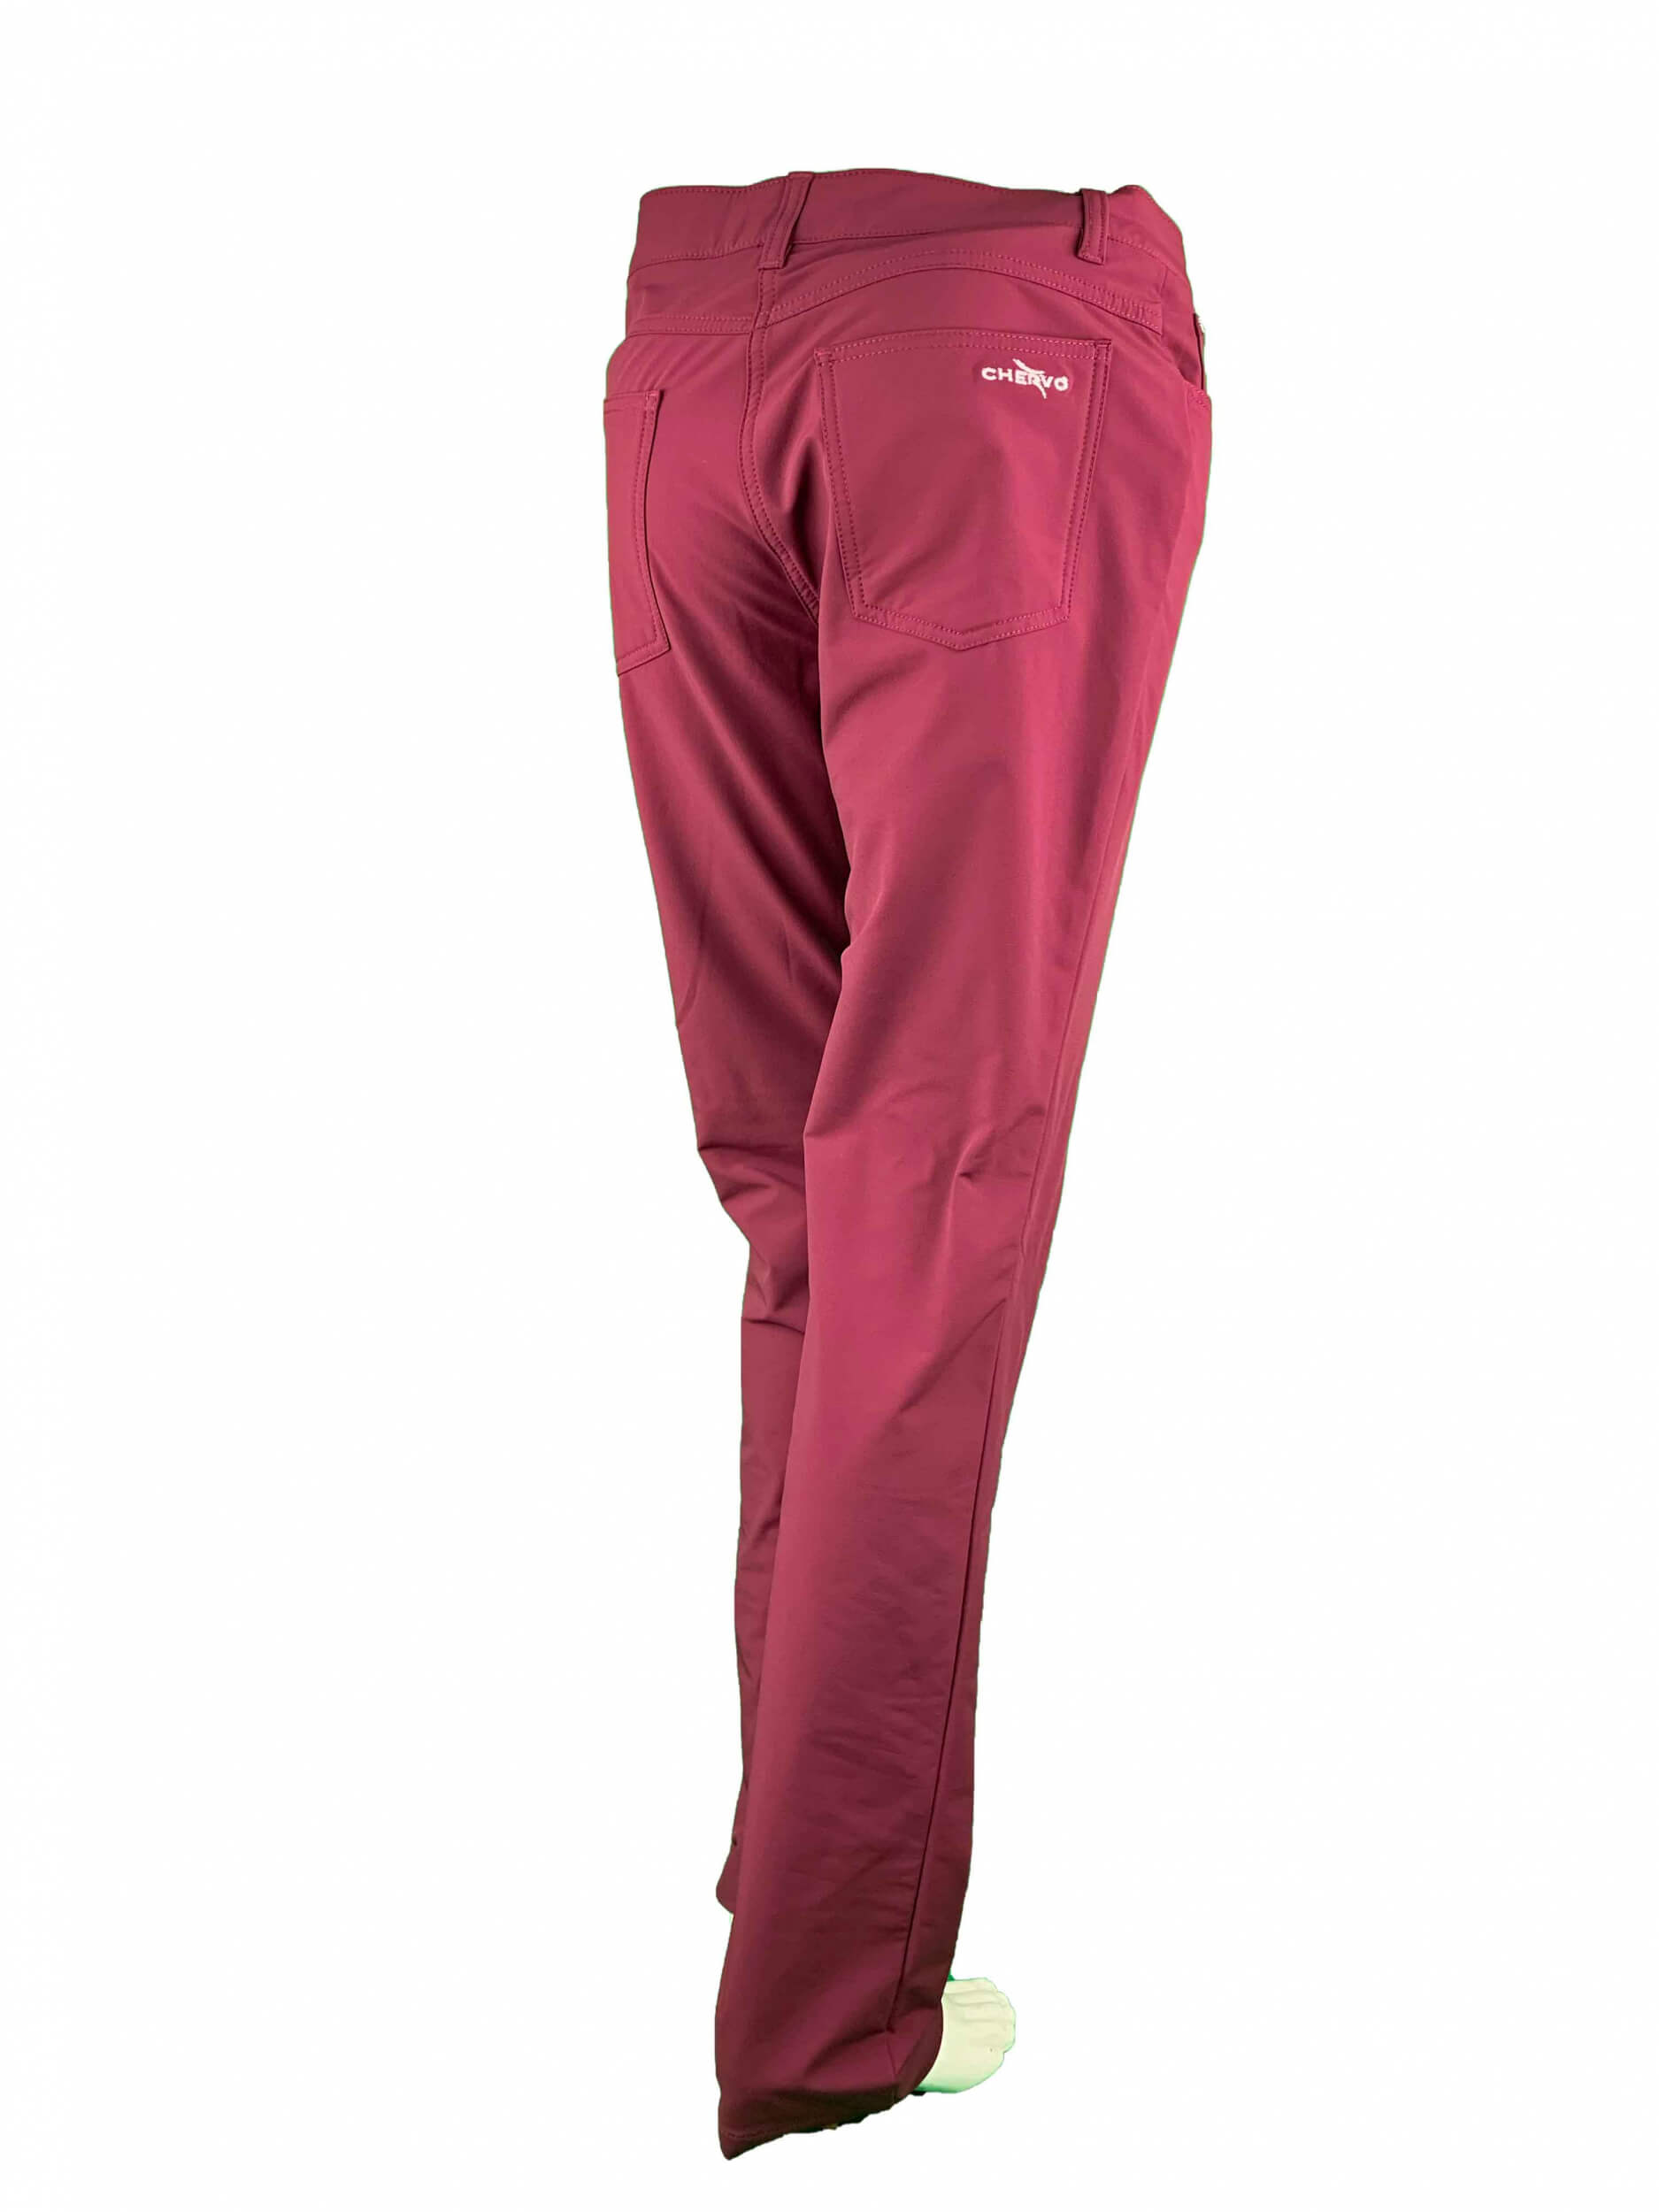 Chervo Damen Hose Sintassi SOFTSHELL 896 bordeaux